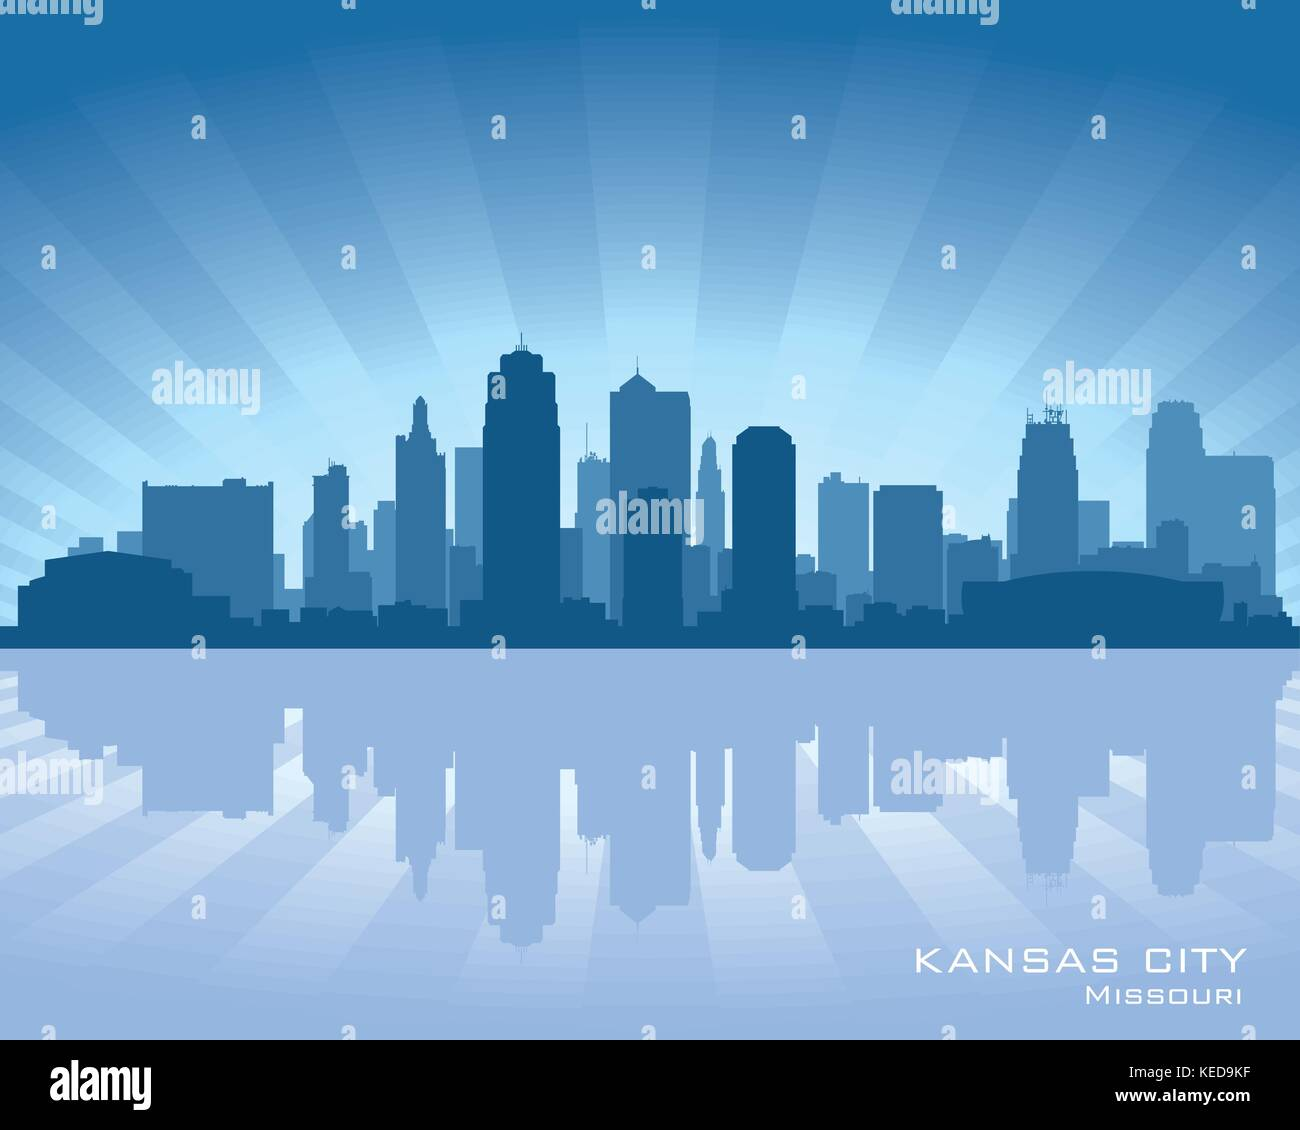 Kansas city, Missouri skyline with reflection in water - Stock Vector